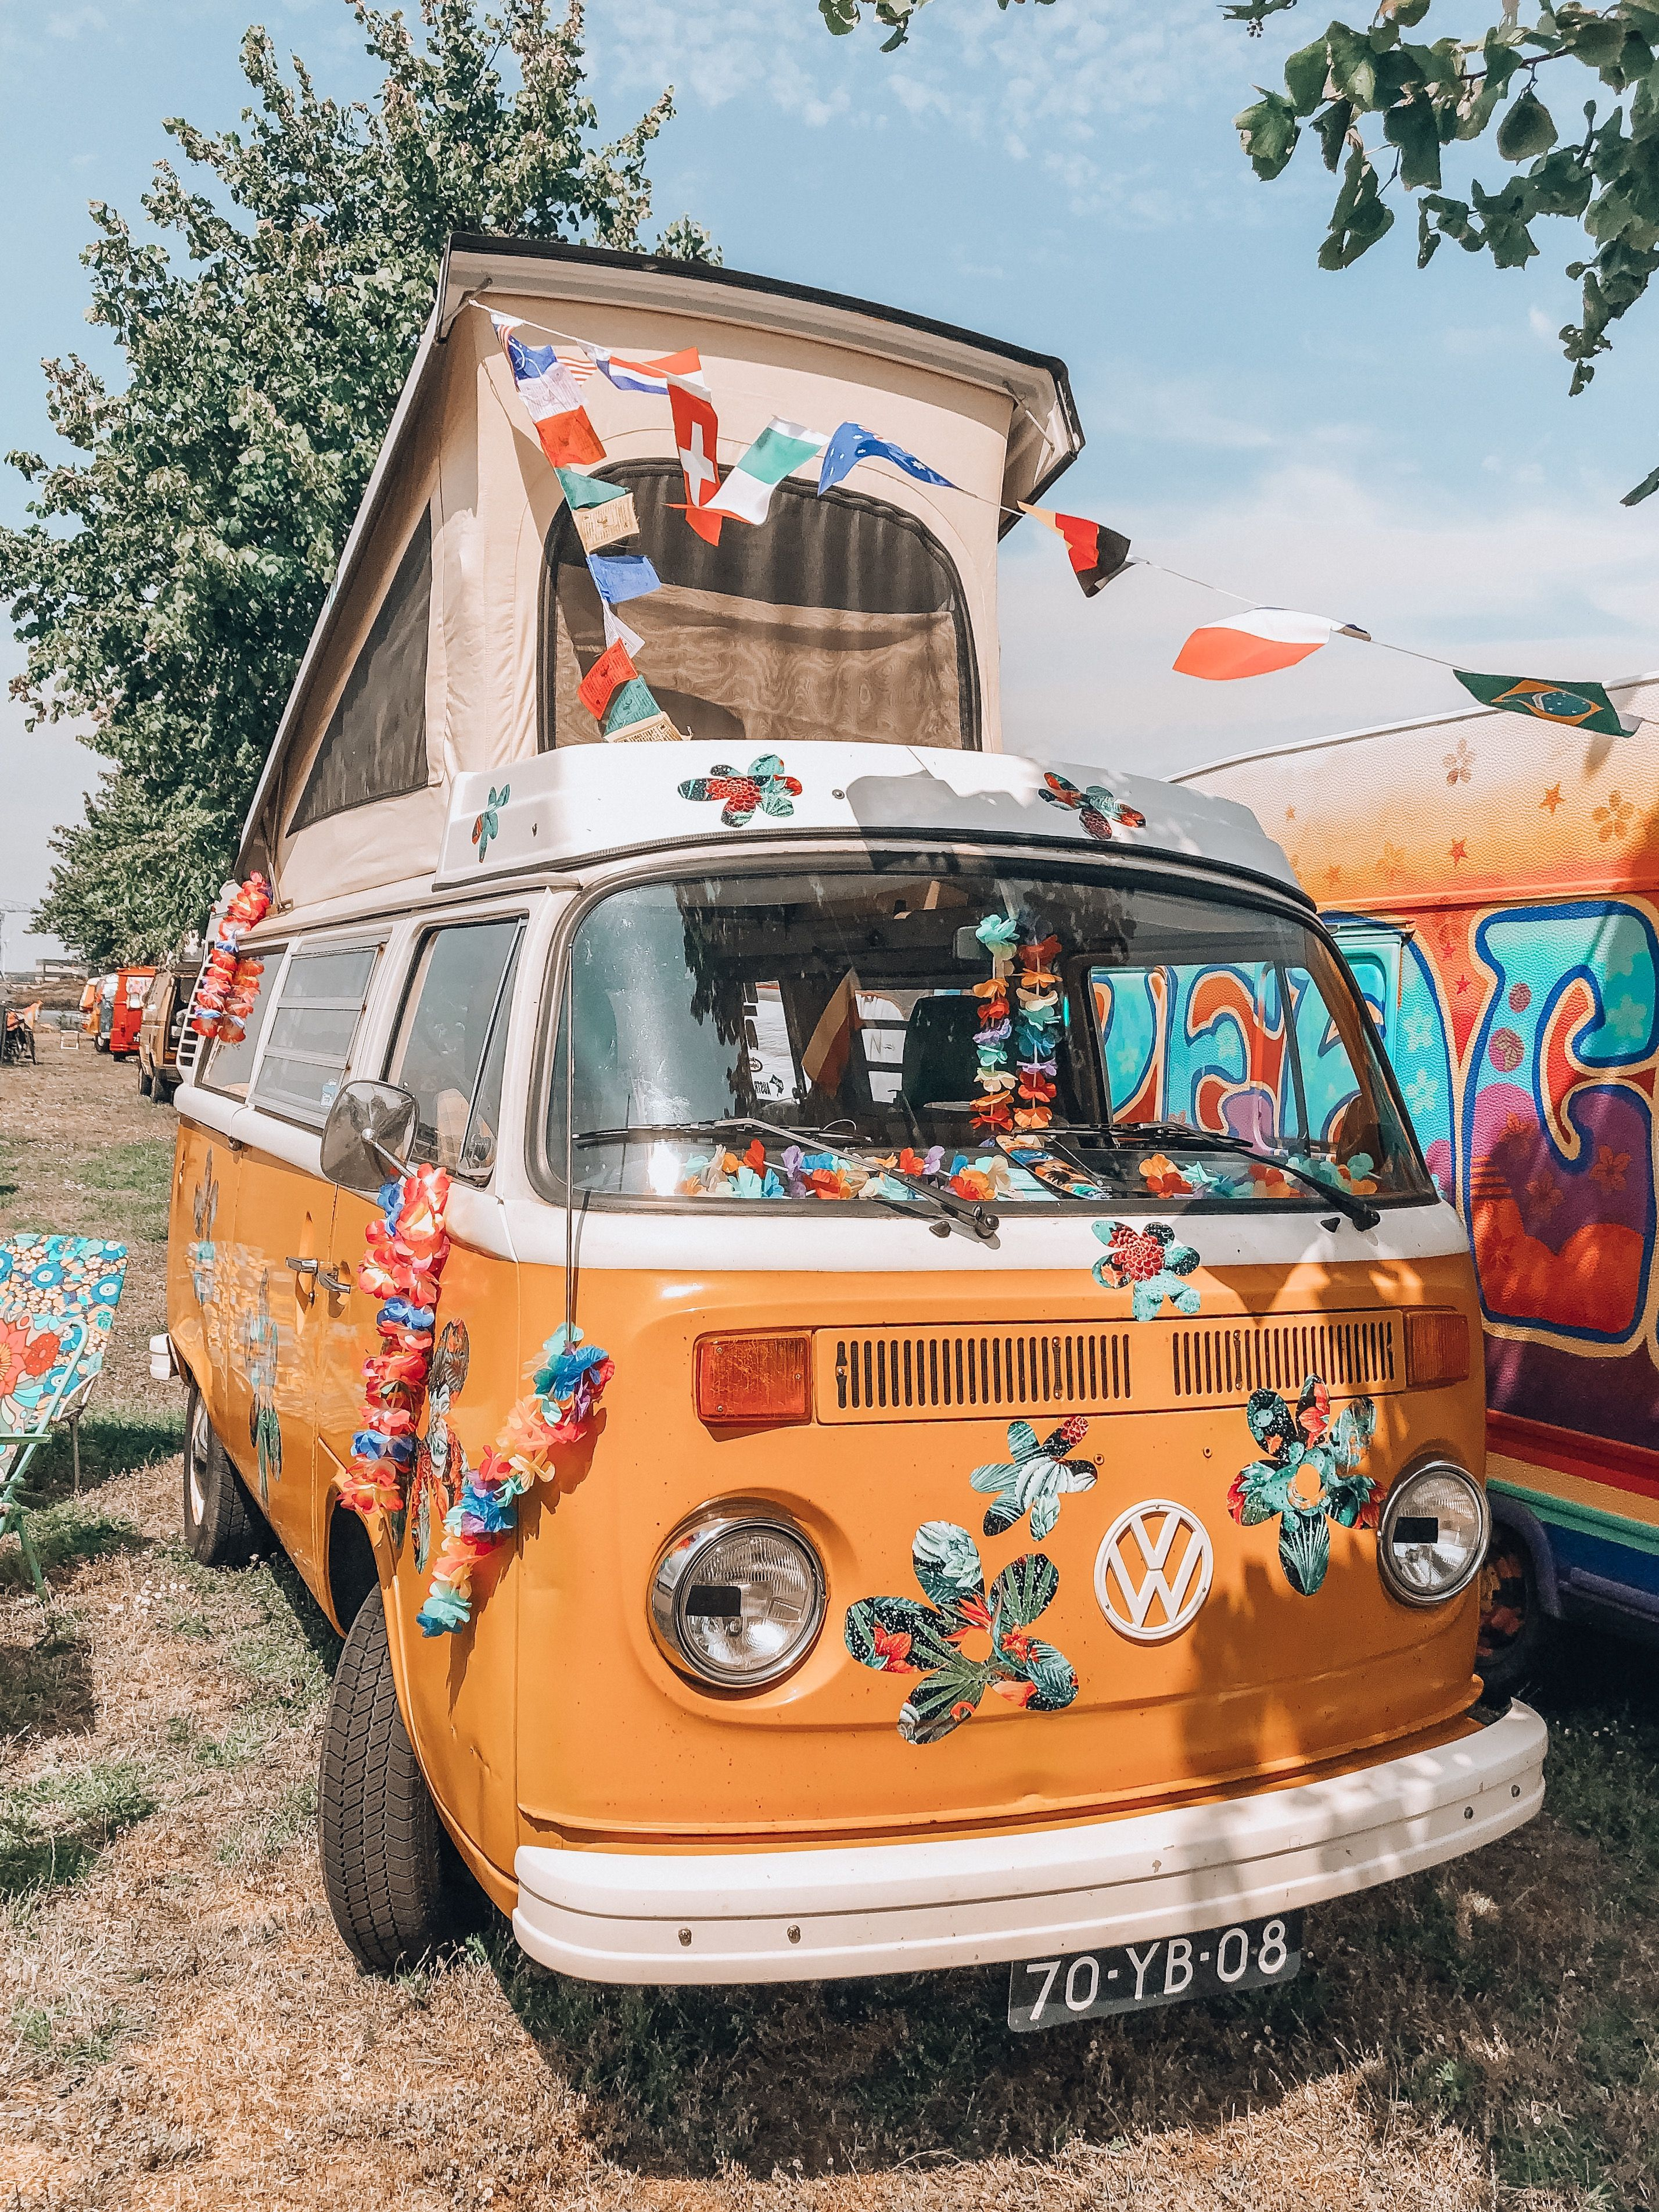 A hippie festival with VW busses